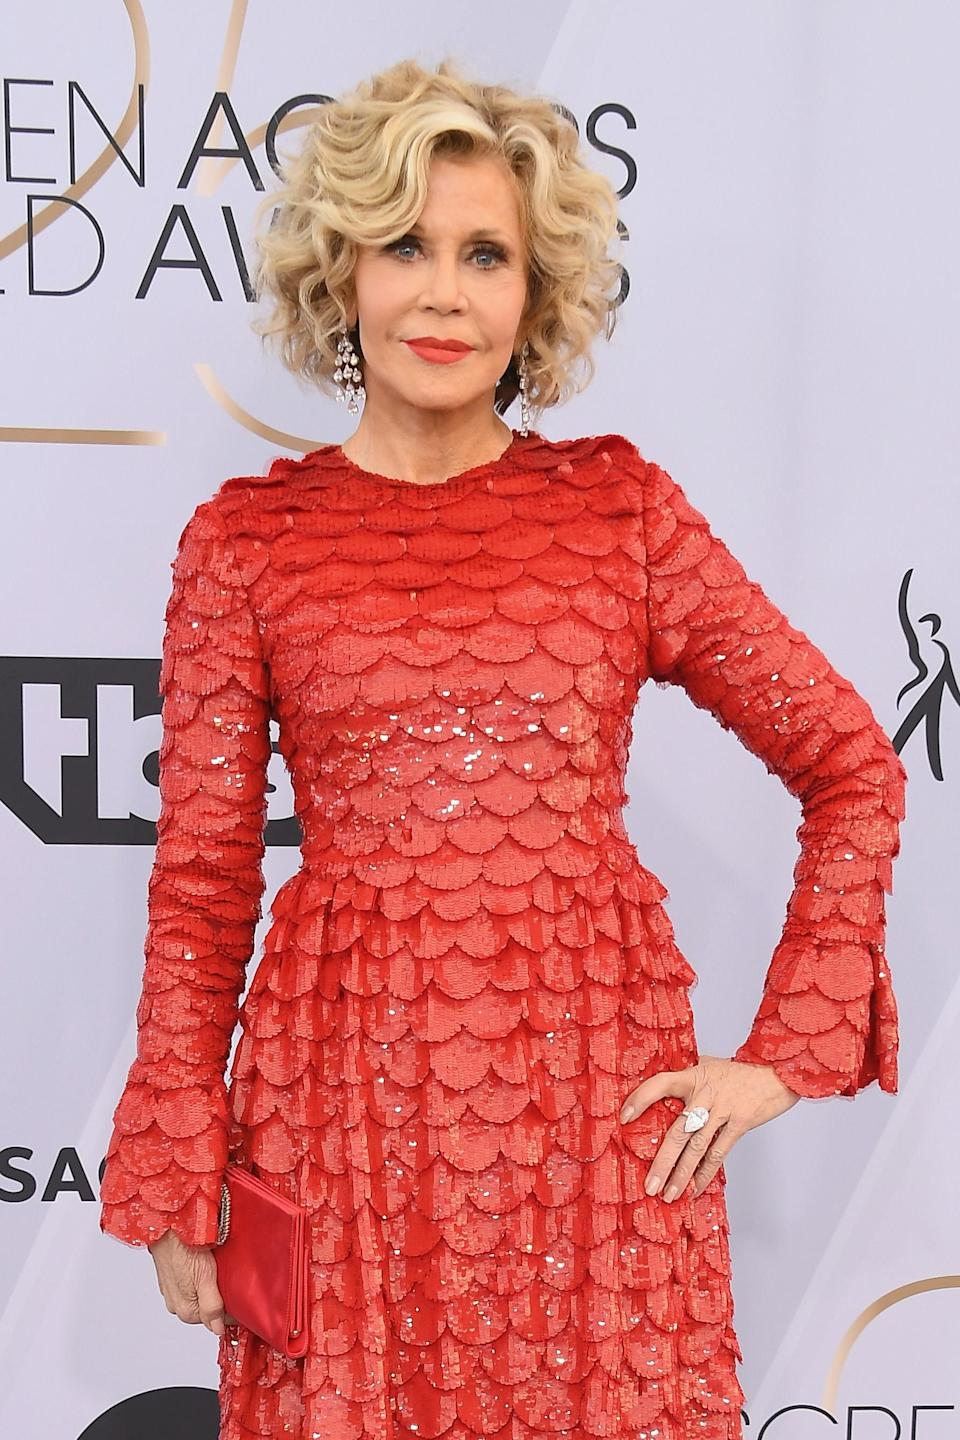 """<p>Actress Jane Fonda, 81, wishes she hadn't gone under the knife but admitted that she basically """"bought a decade"""" in a 2015 interview with <a rel=""""nofollow noopener"""" href=""""https://www.theguardian.com/film/2015/may/21/jane-fonda-youth-plastic-surgery-sex-cannes"""" target=""""_blank"""" data-ylk=""""slk:The Guardian"""" class=""""link rapid-noclick-resp""""><em>The Guardian</em></a>. <em>[Photo: Getty]</em> </p>"""